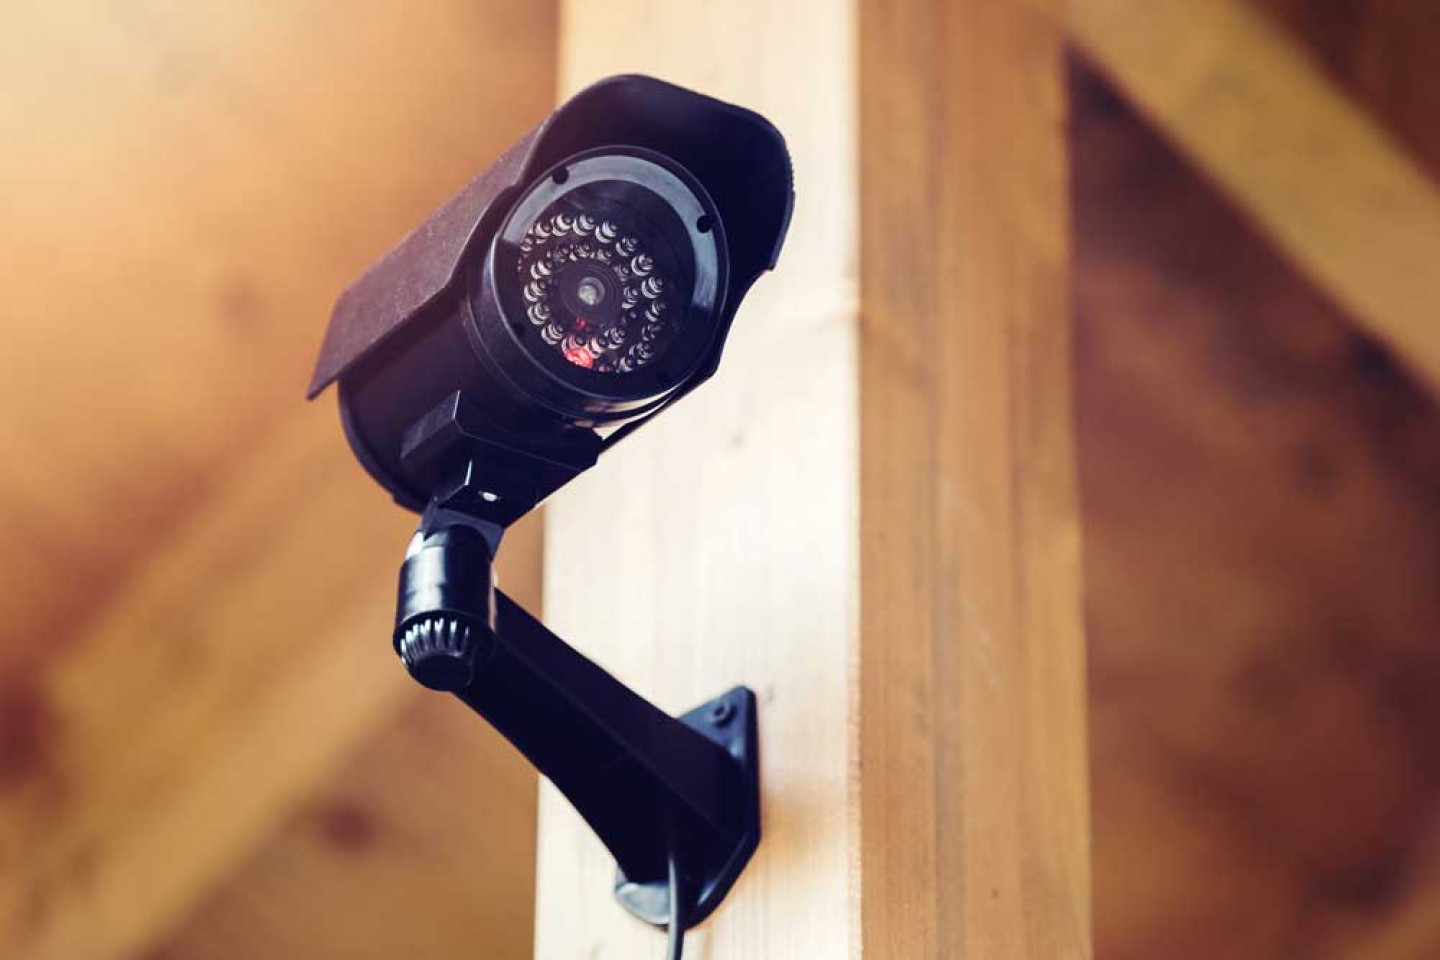 security system supplier fort lauderdale fl